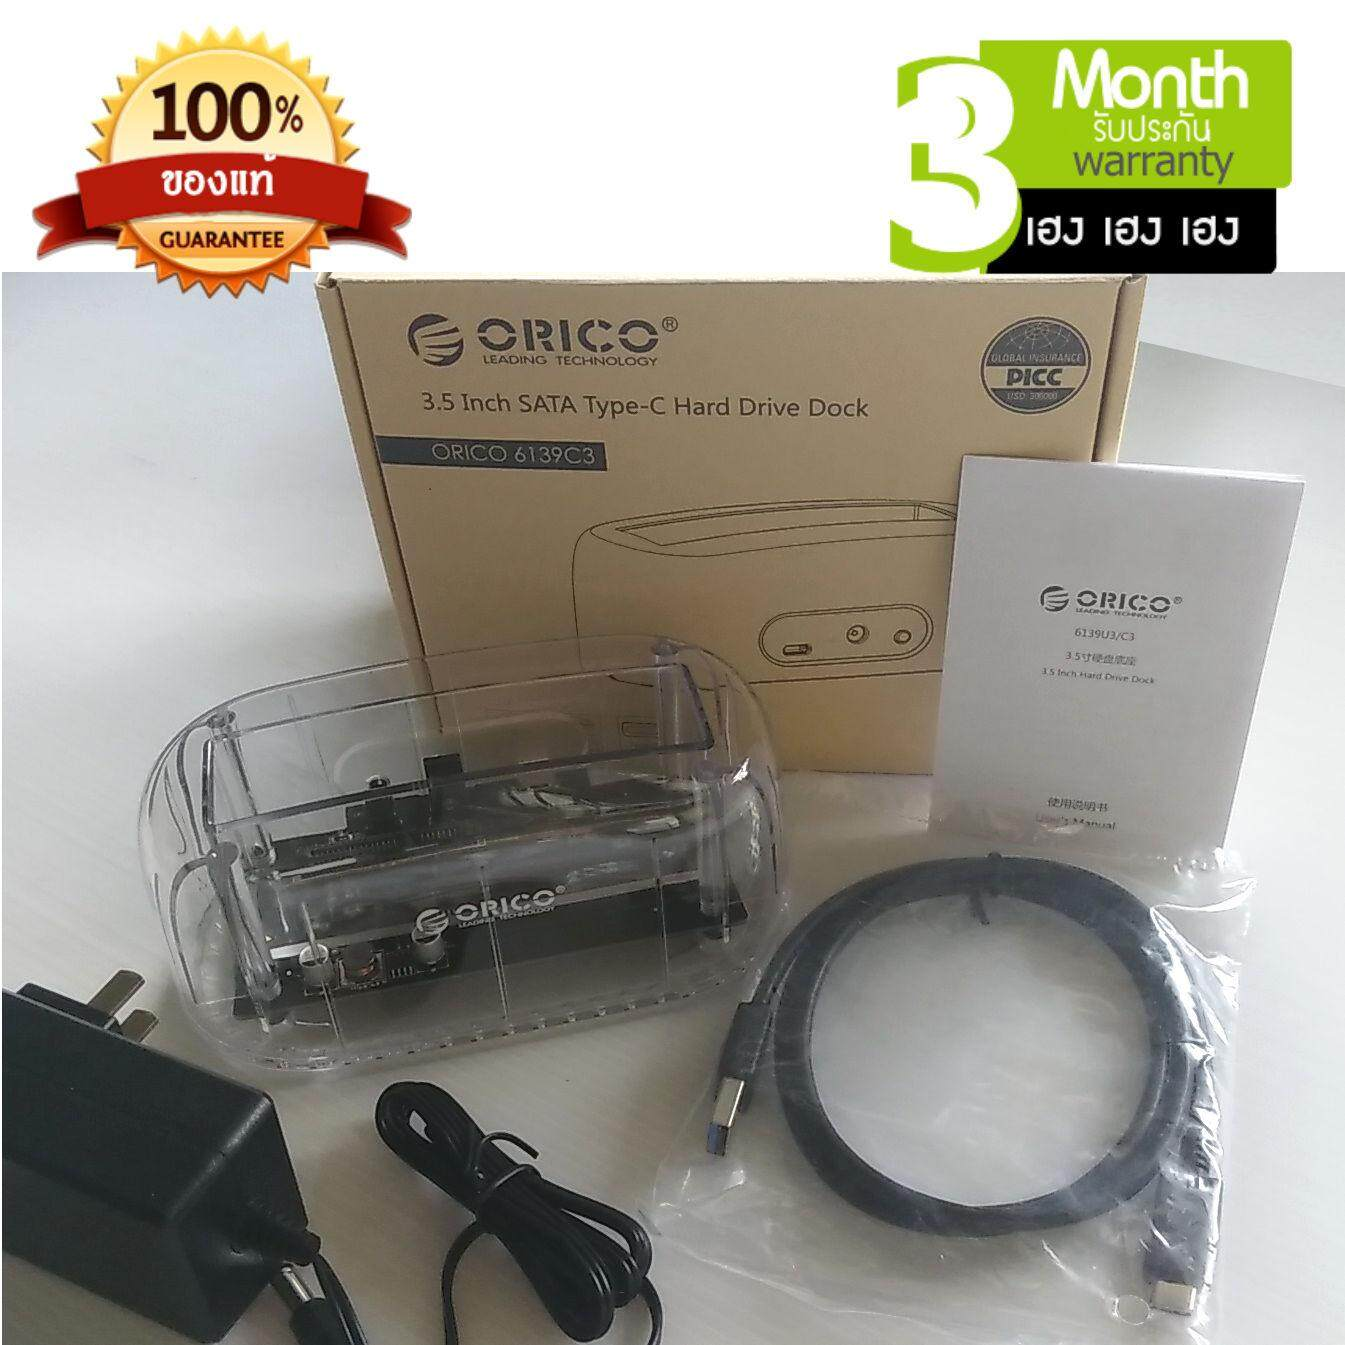 Sell Orico Hdd Docking Cheapest Best Quality Th Store 6218us3 Usb30 Station For Or Ssd 25inch 35inch Sata Thb 800